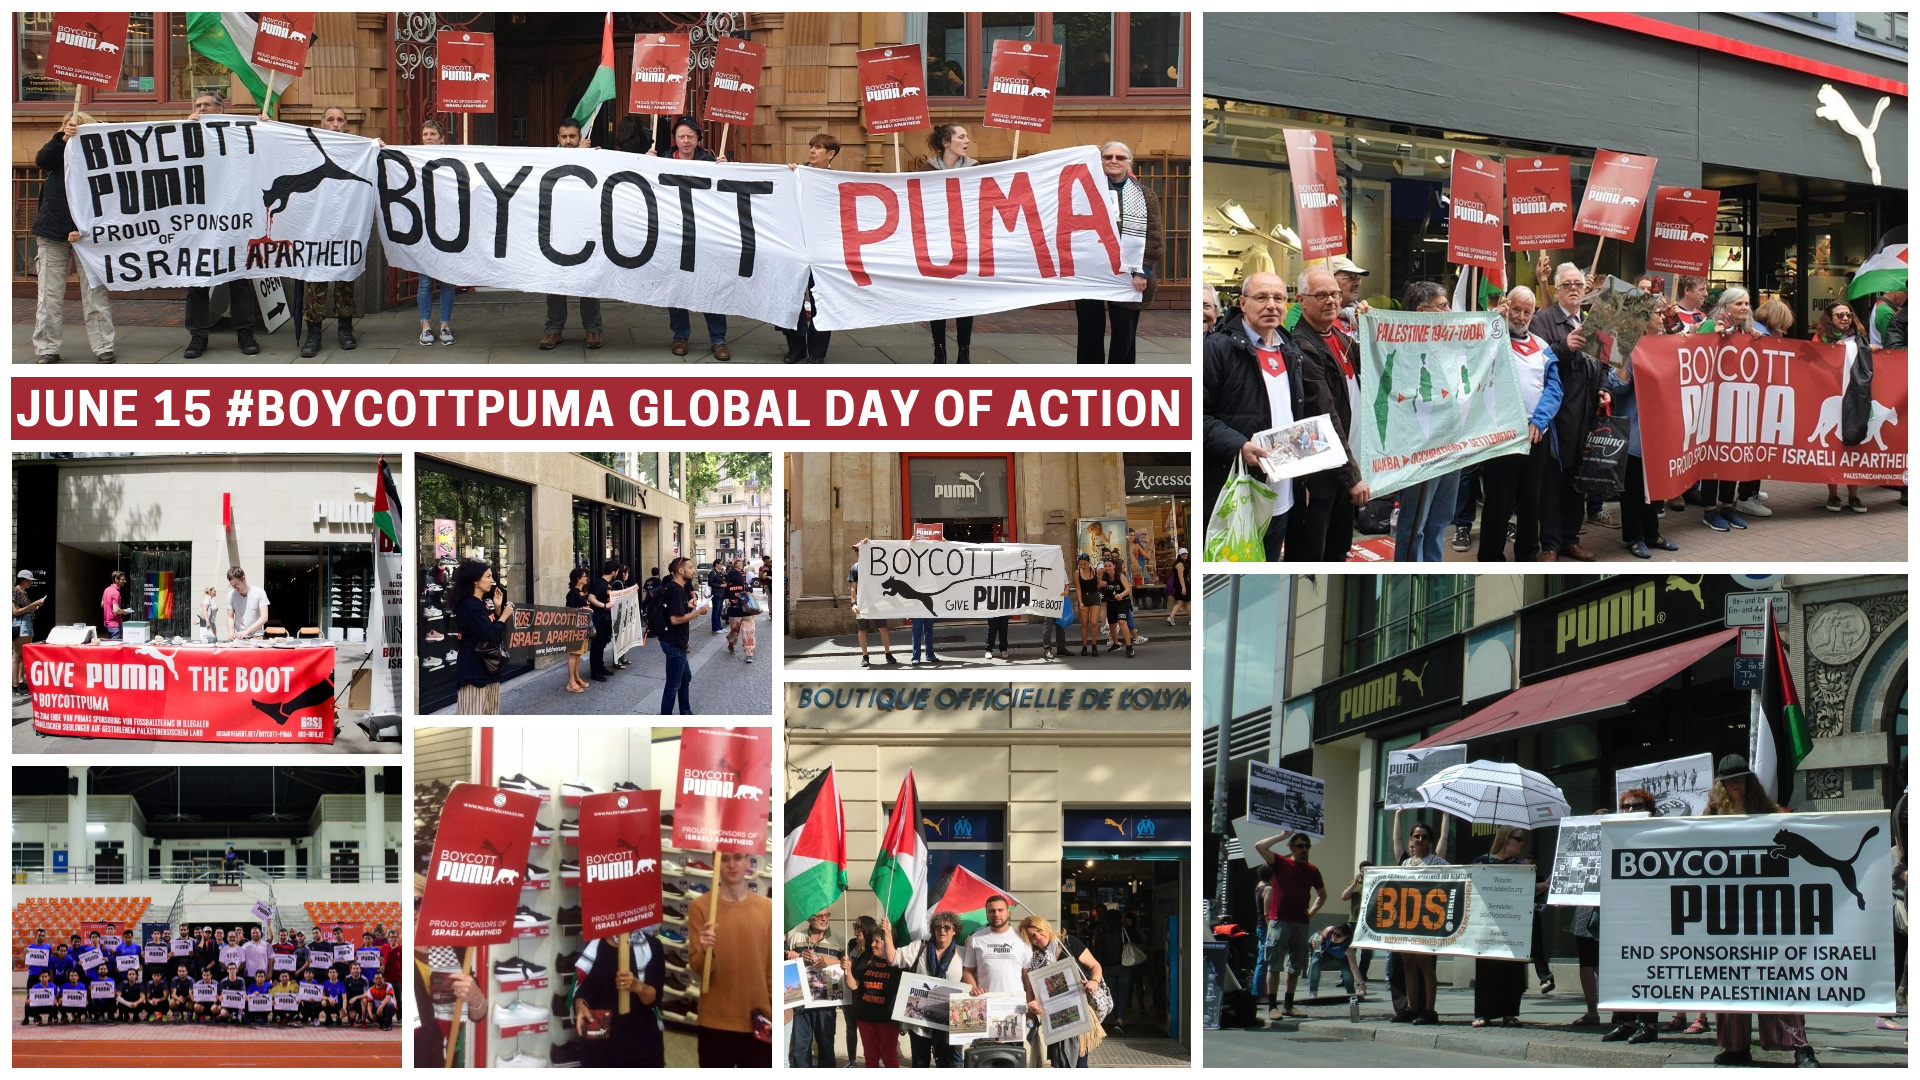 Boycott Puma Global Day of Action